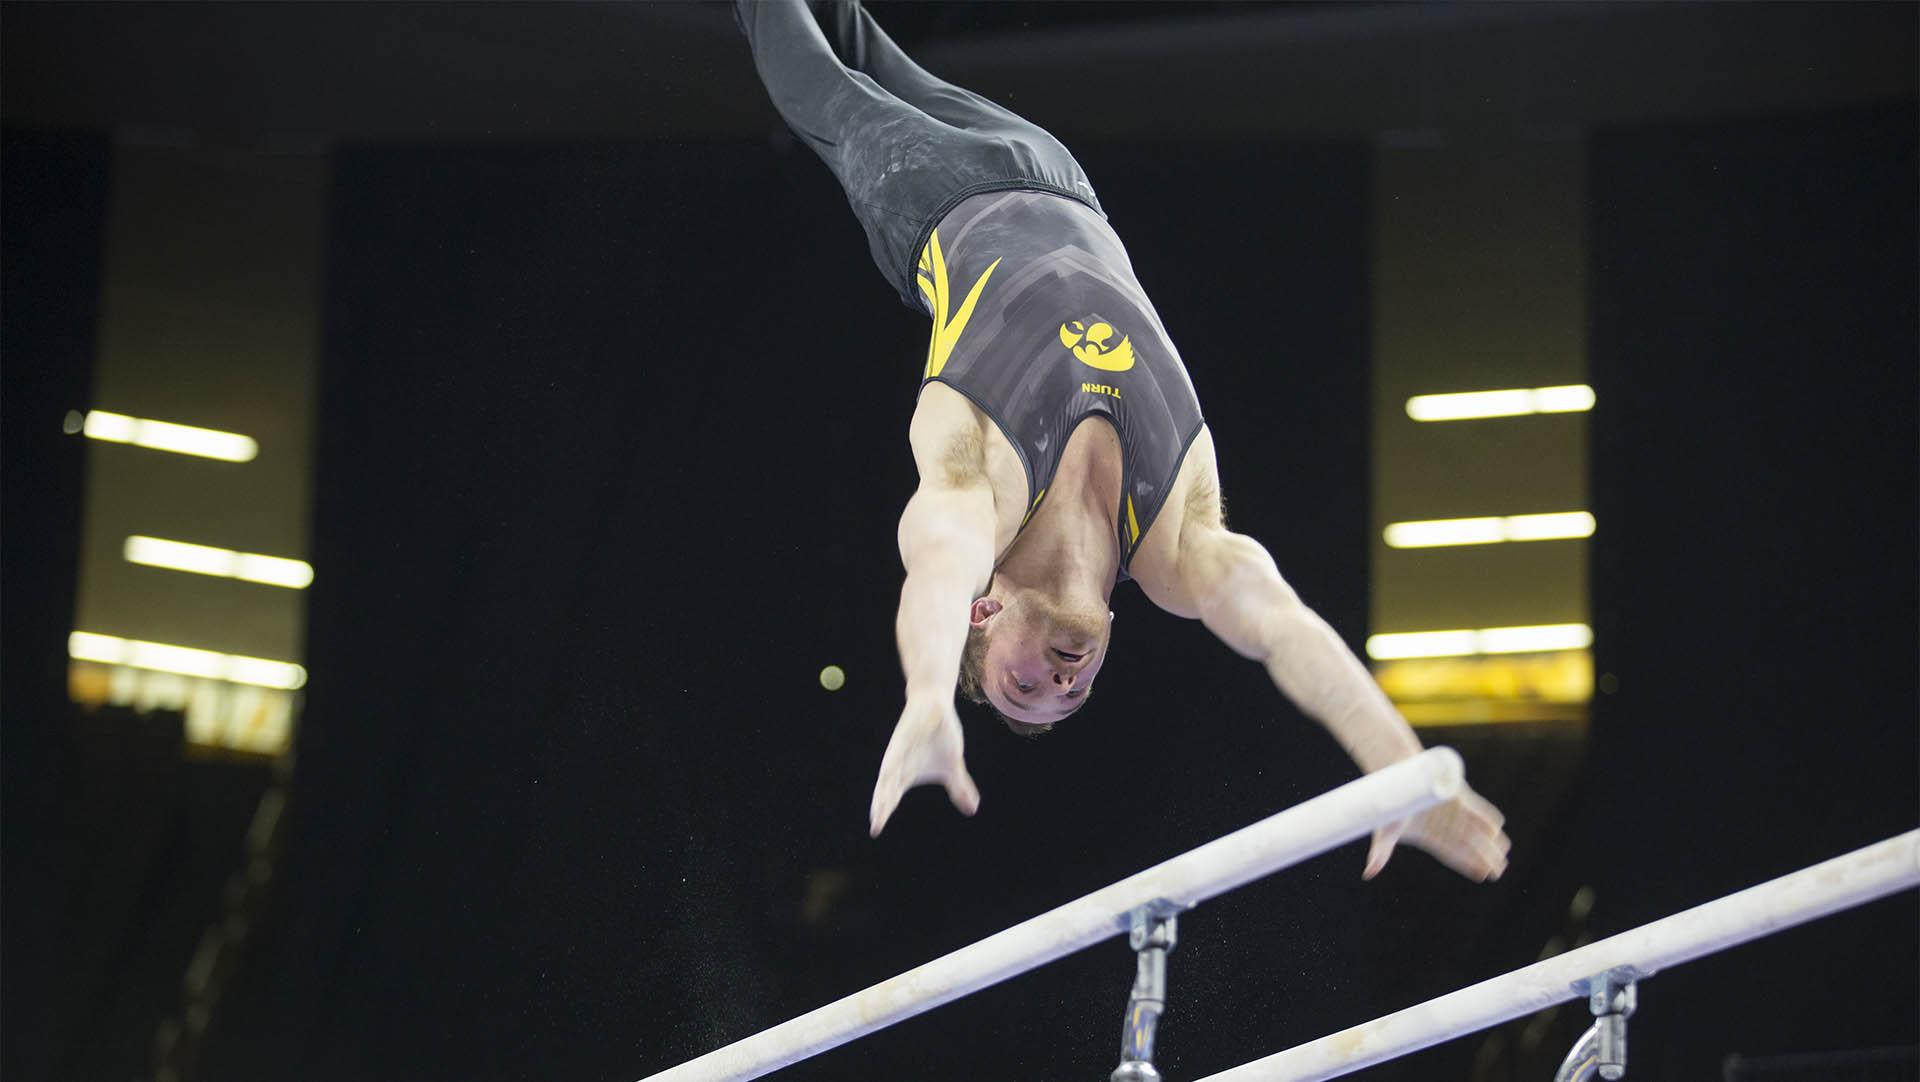 Dylan Ellsworth competes on the parallel bars during men's gymnastics on Feb. 23, 2018. Ellsworth 13.750 for his performance on the parallel bars. The Cornhusters defeated the Hawkeyes 402.8 to 398.5. (Katie Goodale/ The Daily Iowan)